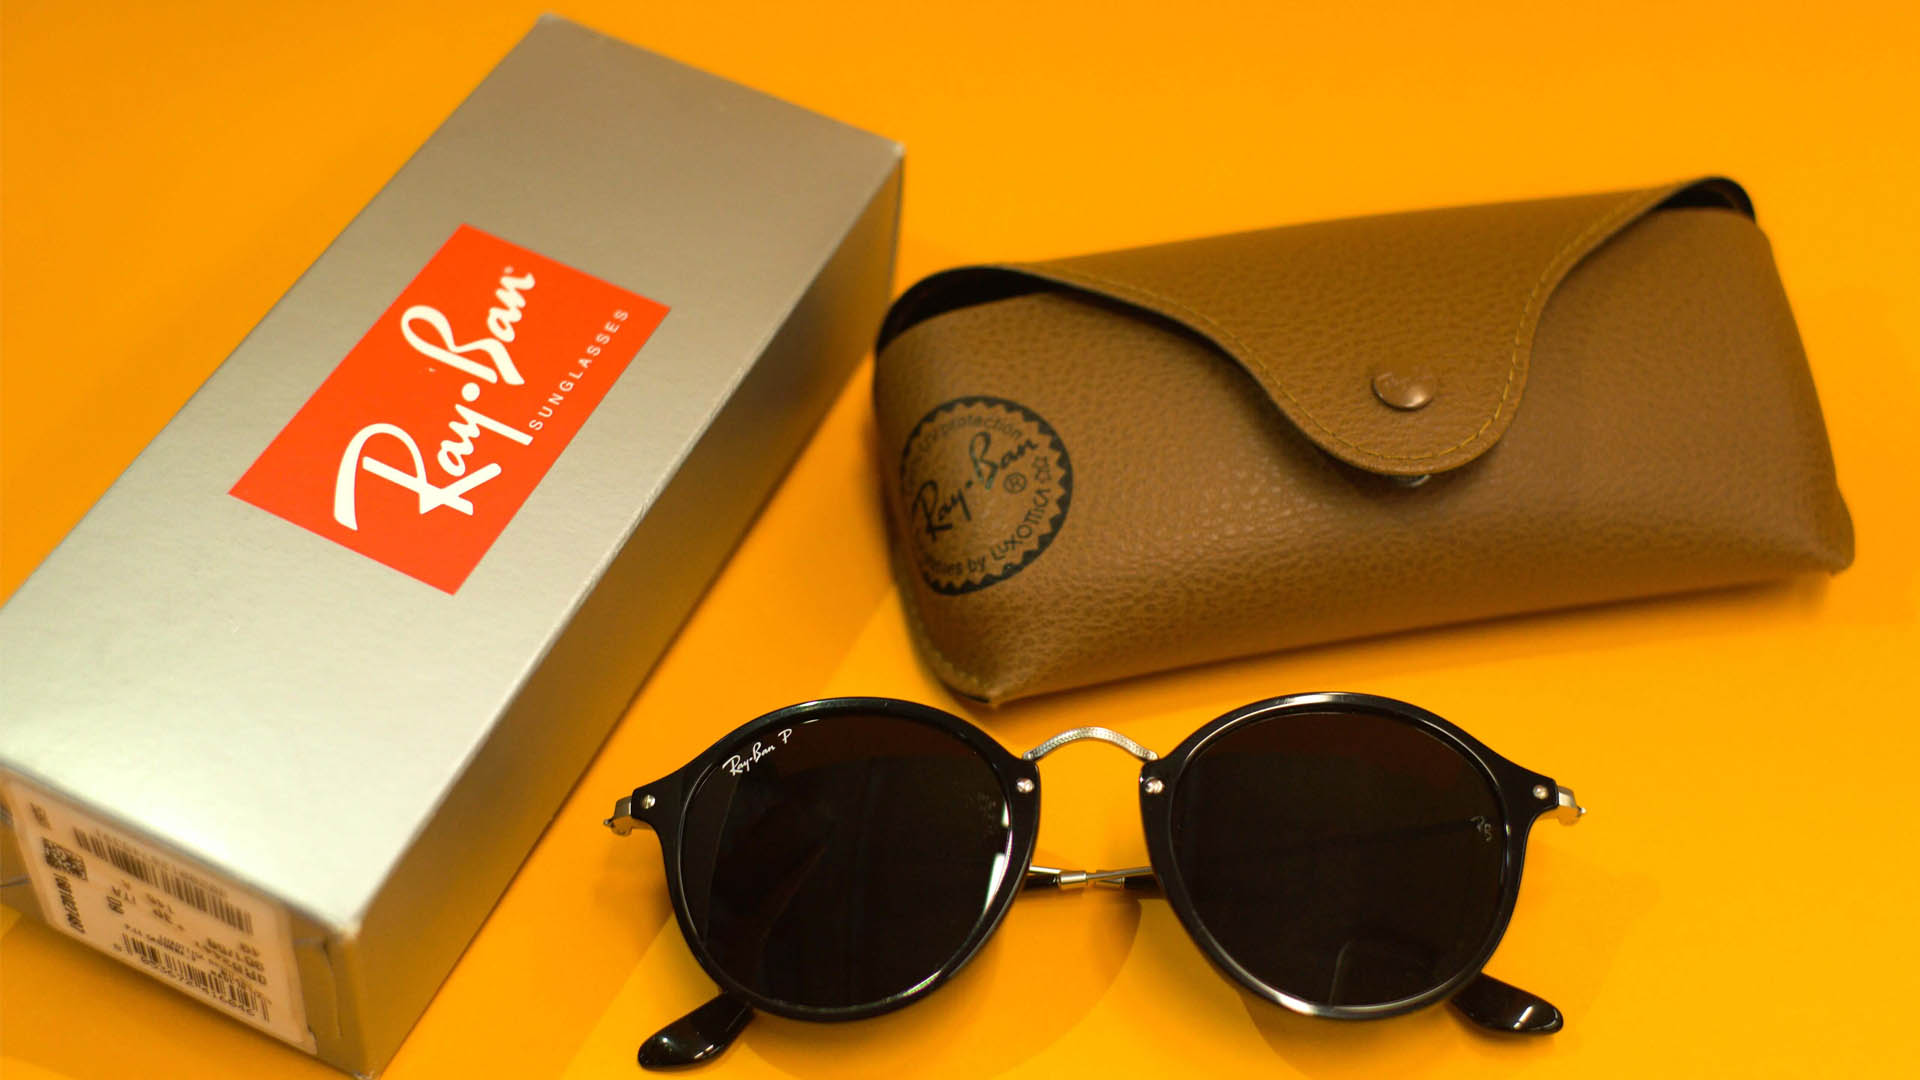 Purchase Incredible Polarized Sunglasses At Ray Ban Through Lemoney